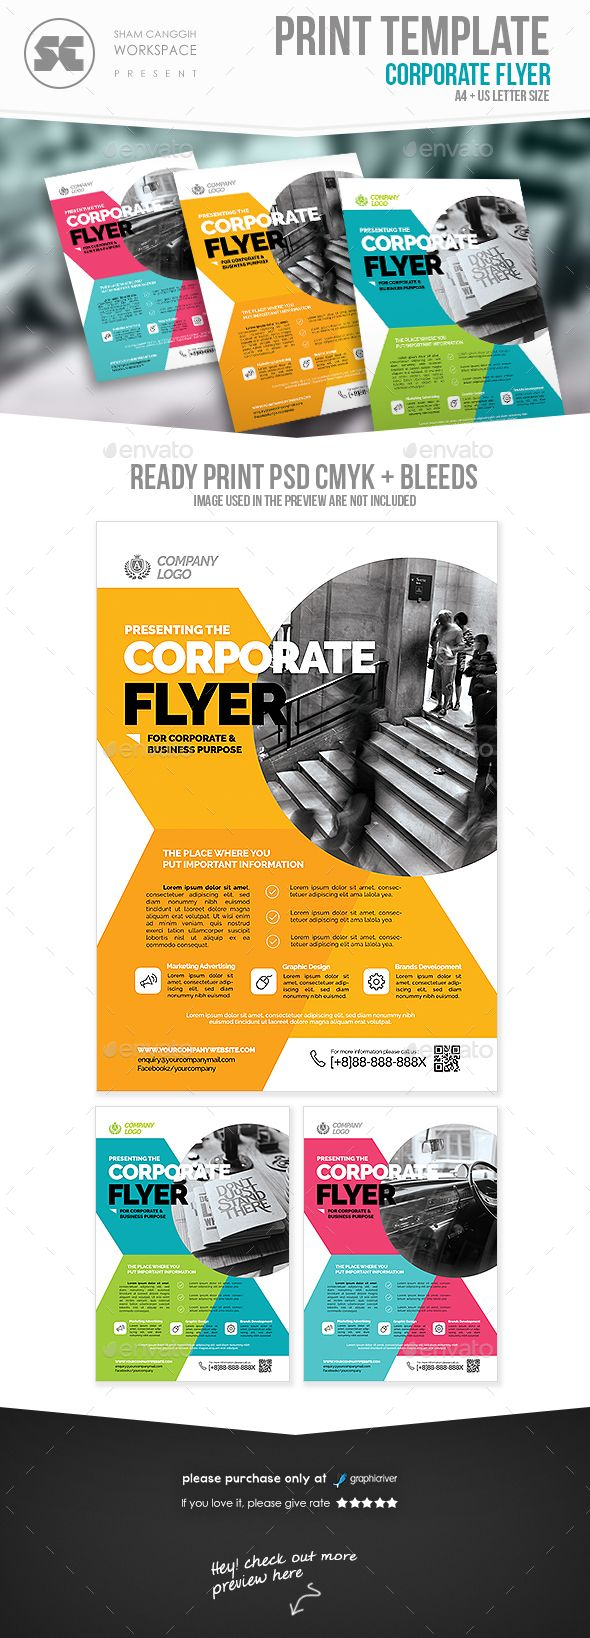 Corporate Business Flyer Template PSD. Download here: http://graphicriver.net/item/corporate-business-flyer/16426065?ref=ksioks